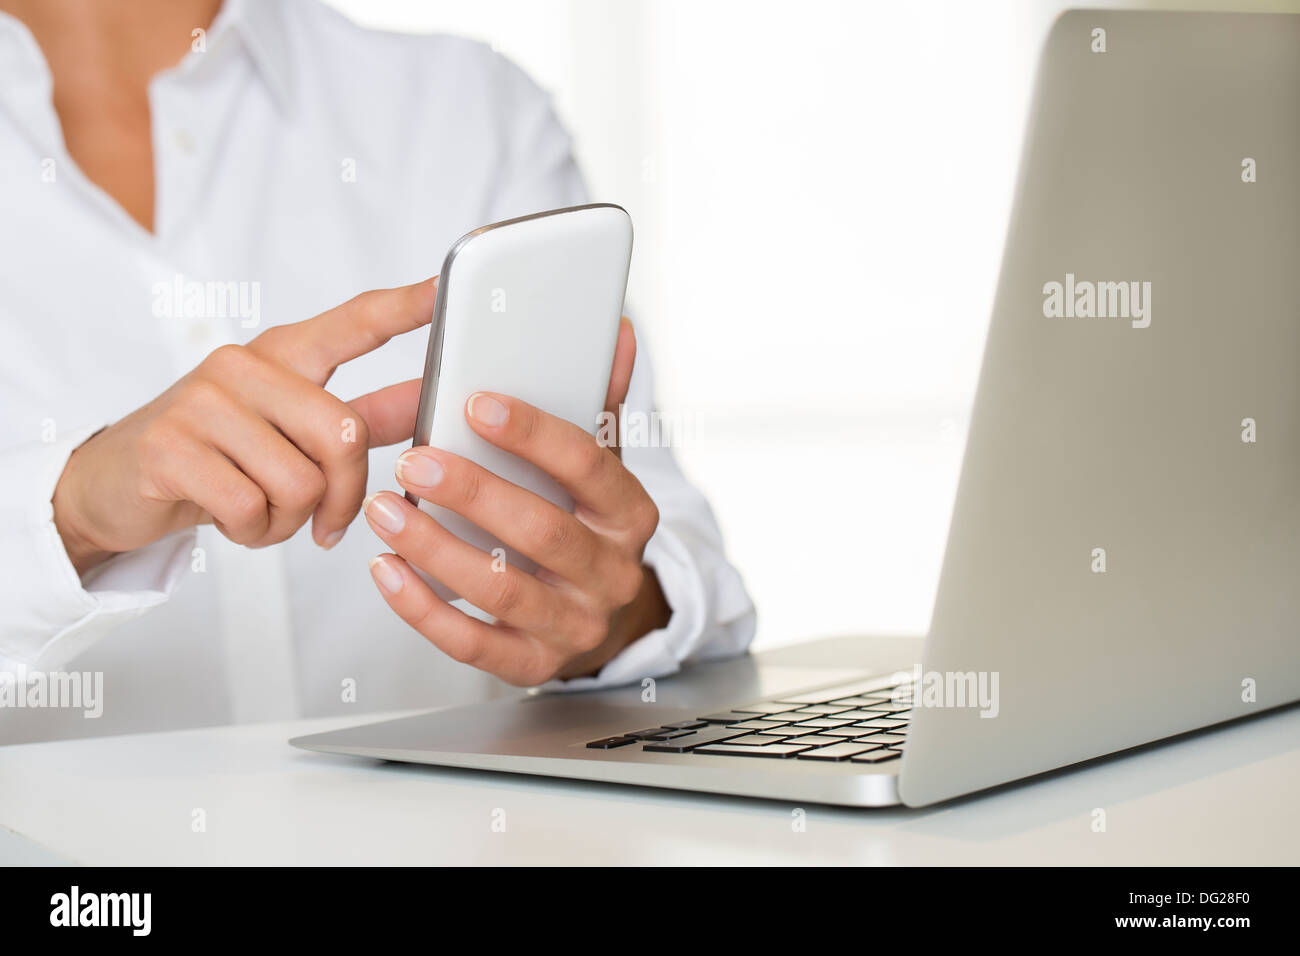 Female laptop cell phone finger table desk indoor - Stock Image